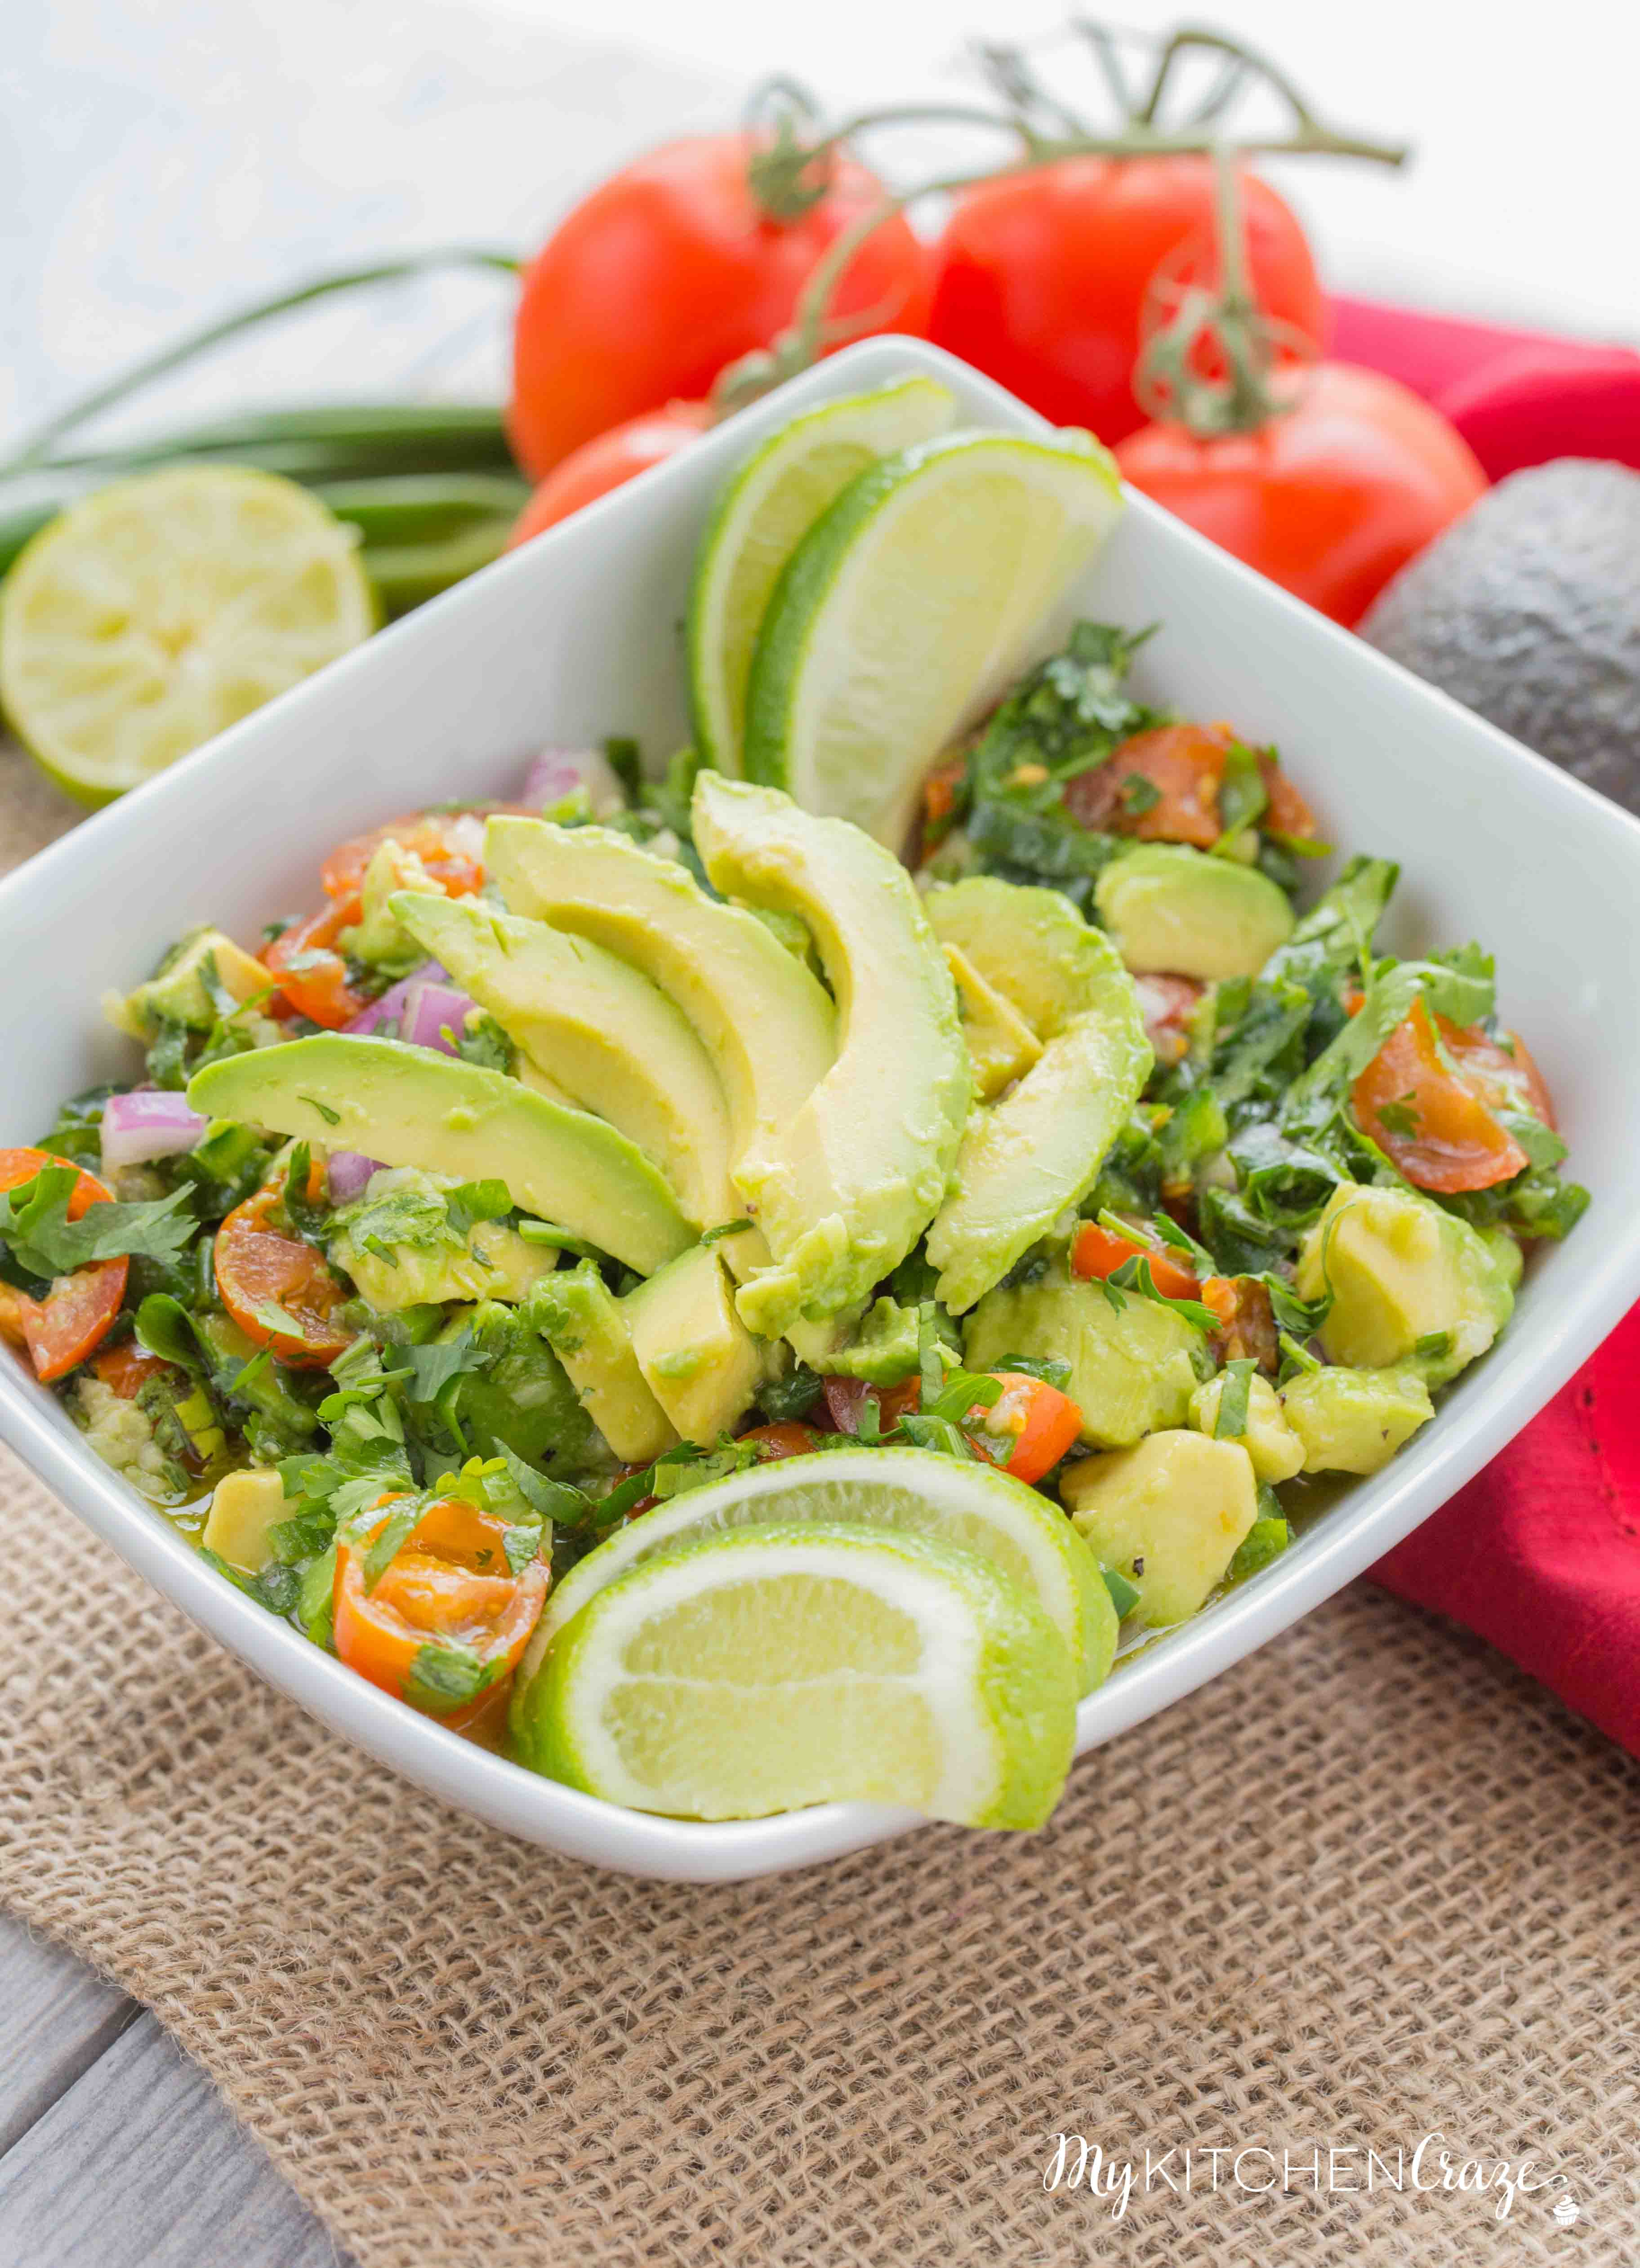 Avocado Salad ~ mykitchencraze.com ~ Enjoy this easy and refreshing Avocado Salad as a side dish or a main entree. Either way it's easy to make and tastes delicious!